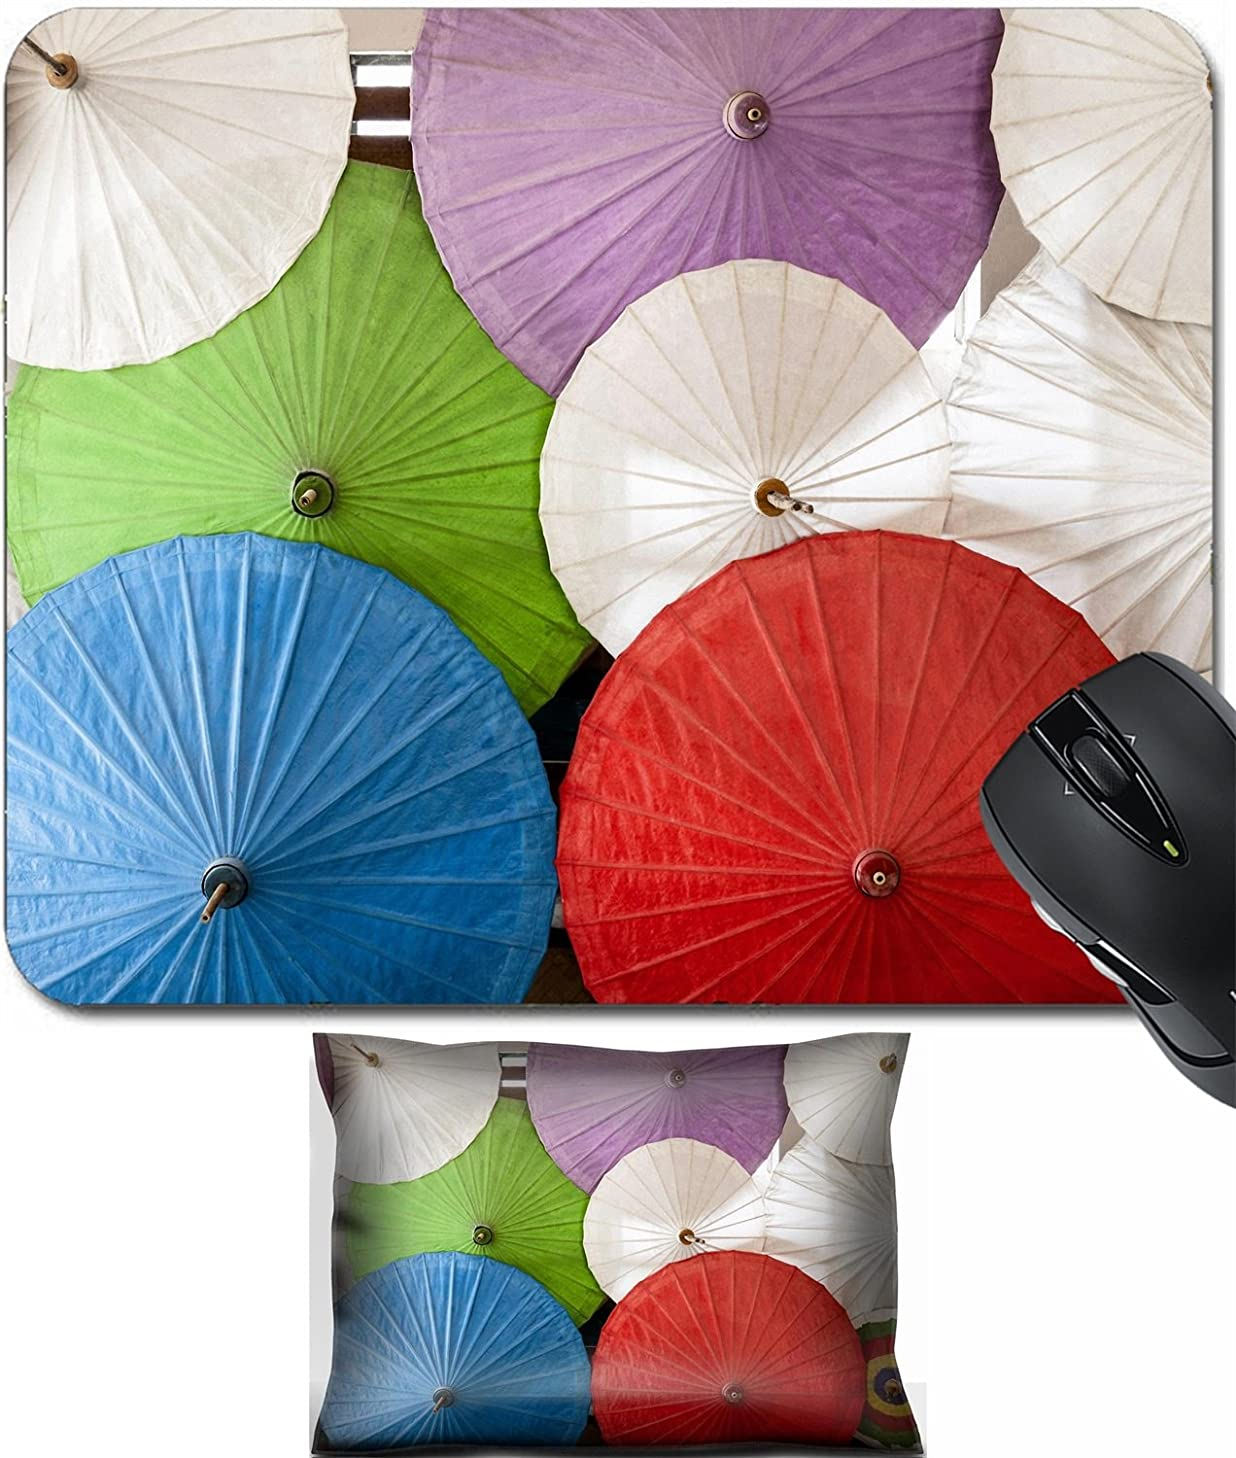 MSD Mouse Wrist Rest and Small Mousepad Set, 2pc Wrist Support design 20299292 Close up of colorful umbrellas Colorful umbrellas with wooden handle